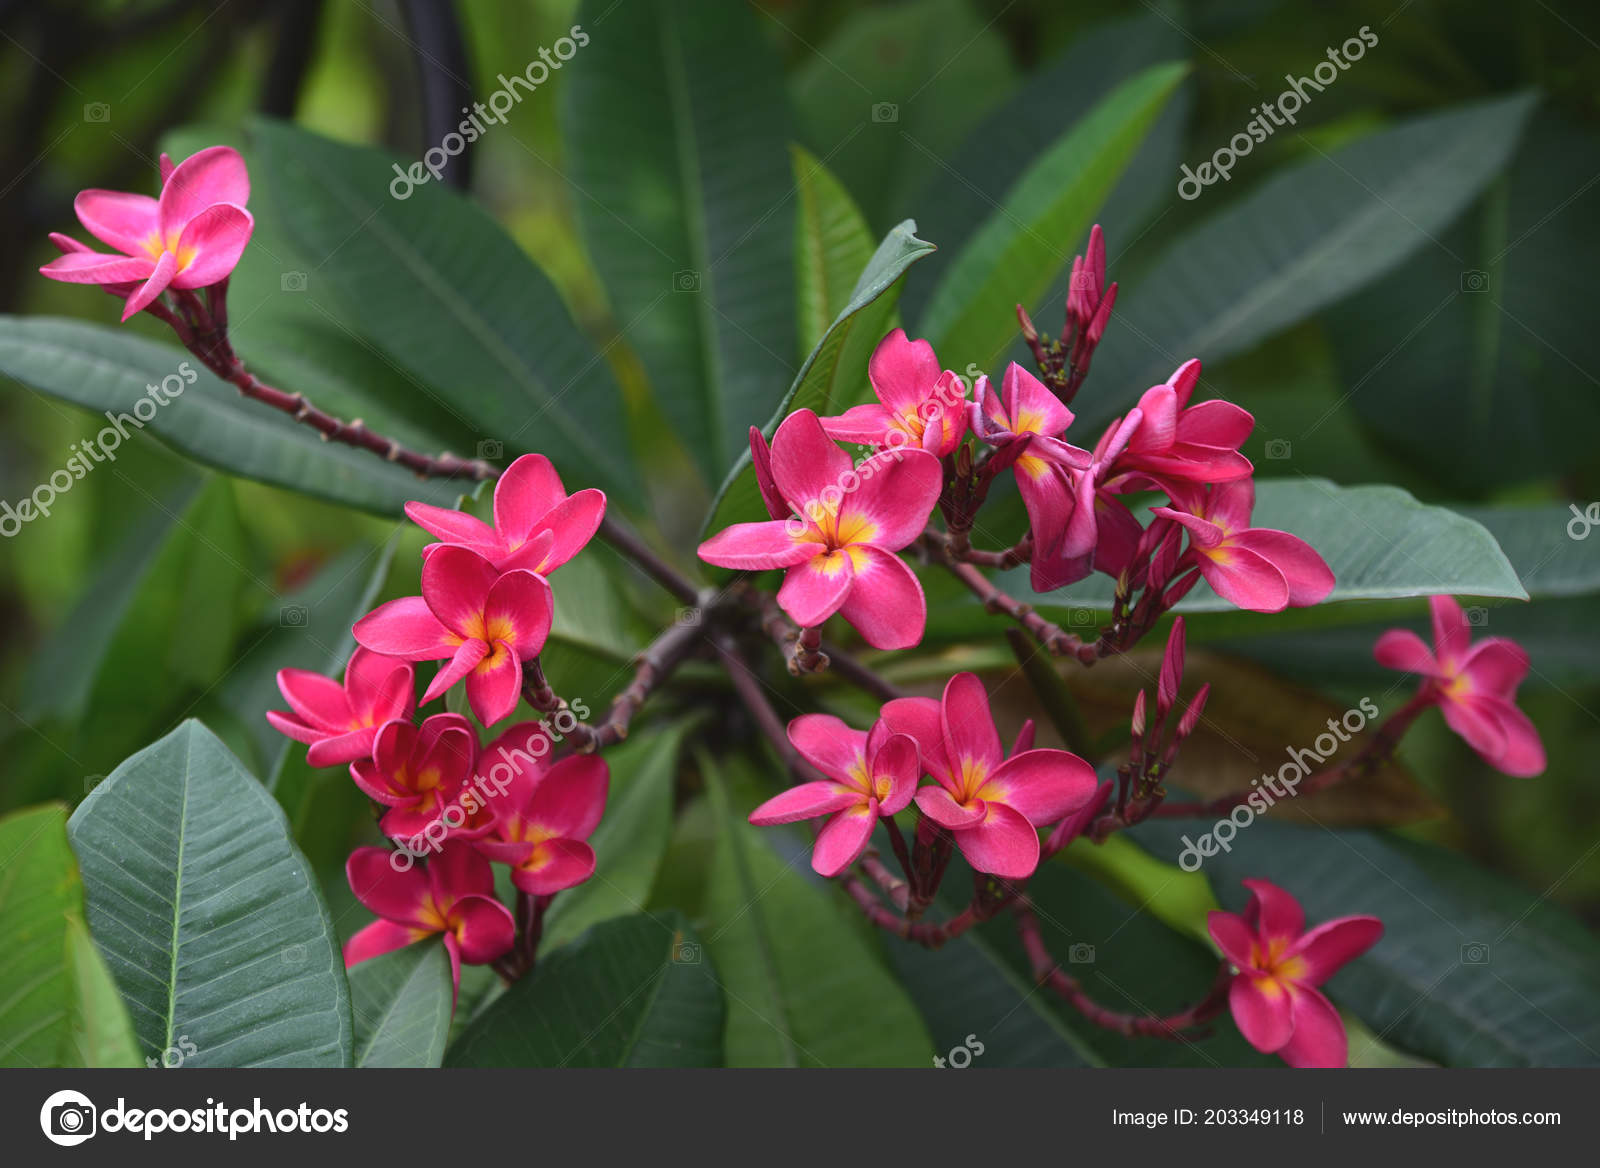 Colorful flowers garden plumeria flower blooming beautiful flowers colorful flowers garden plumeria flower blooming beautiful flowers garden blooming izmirmasajfo